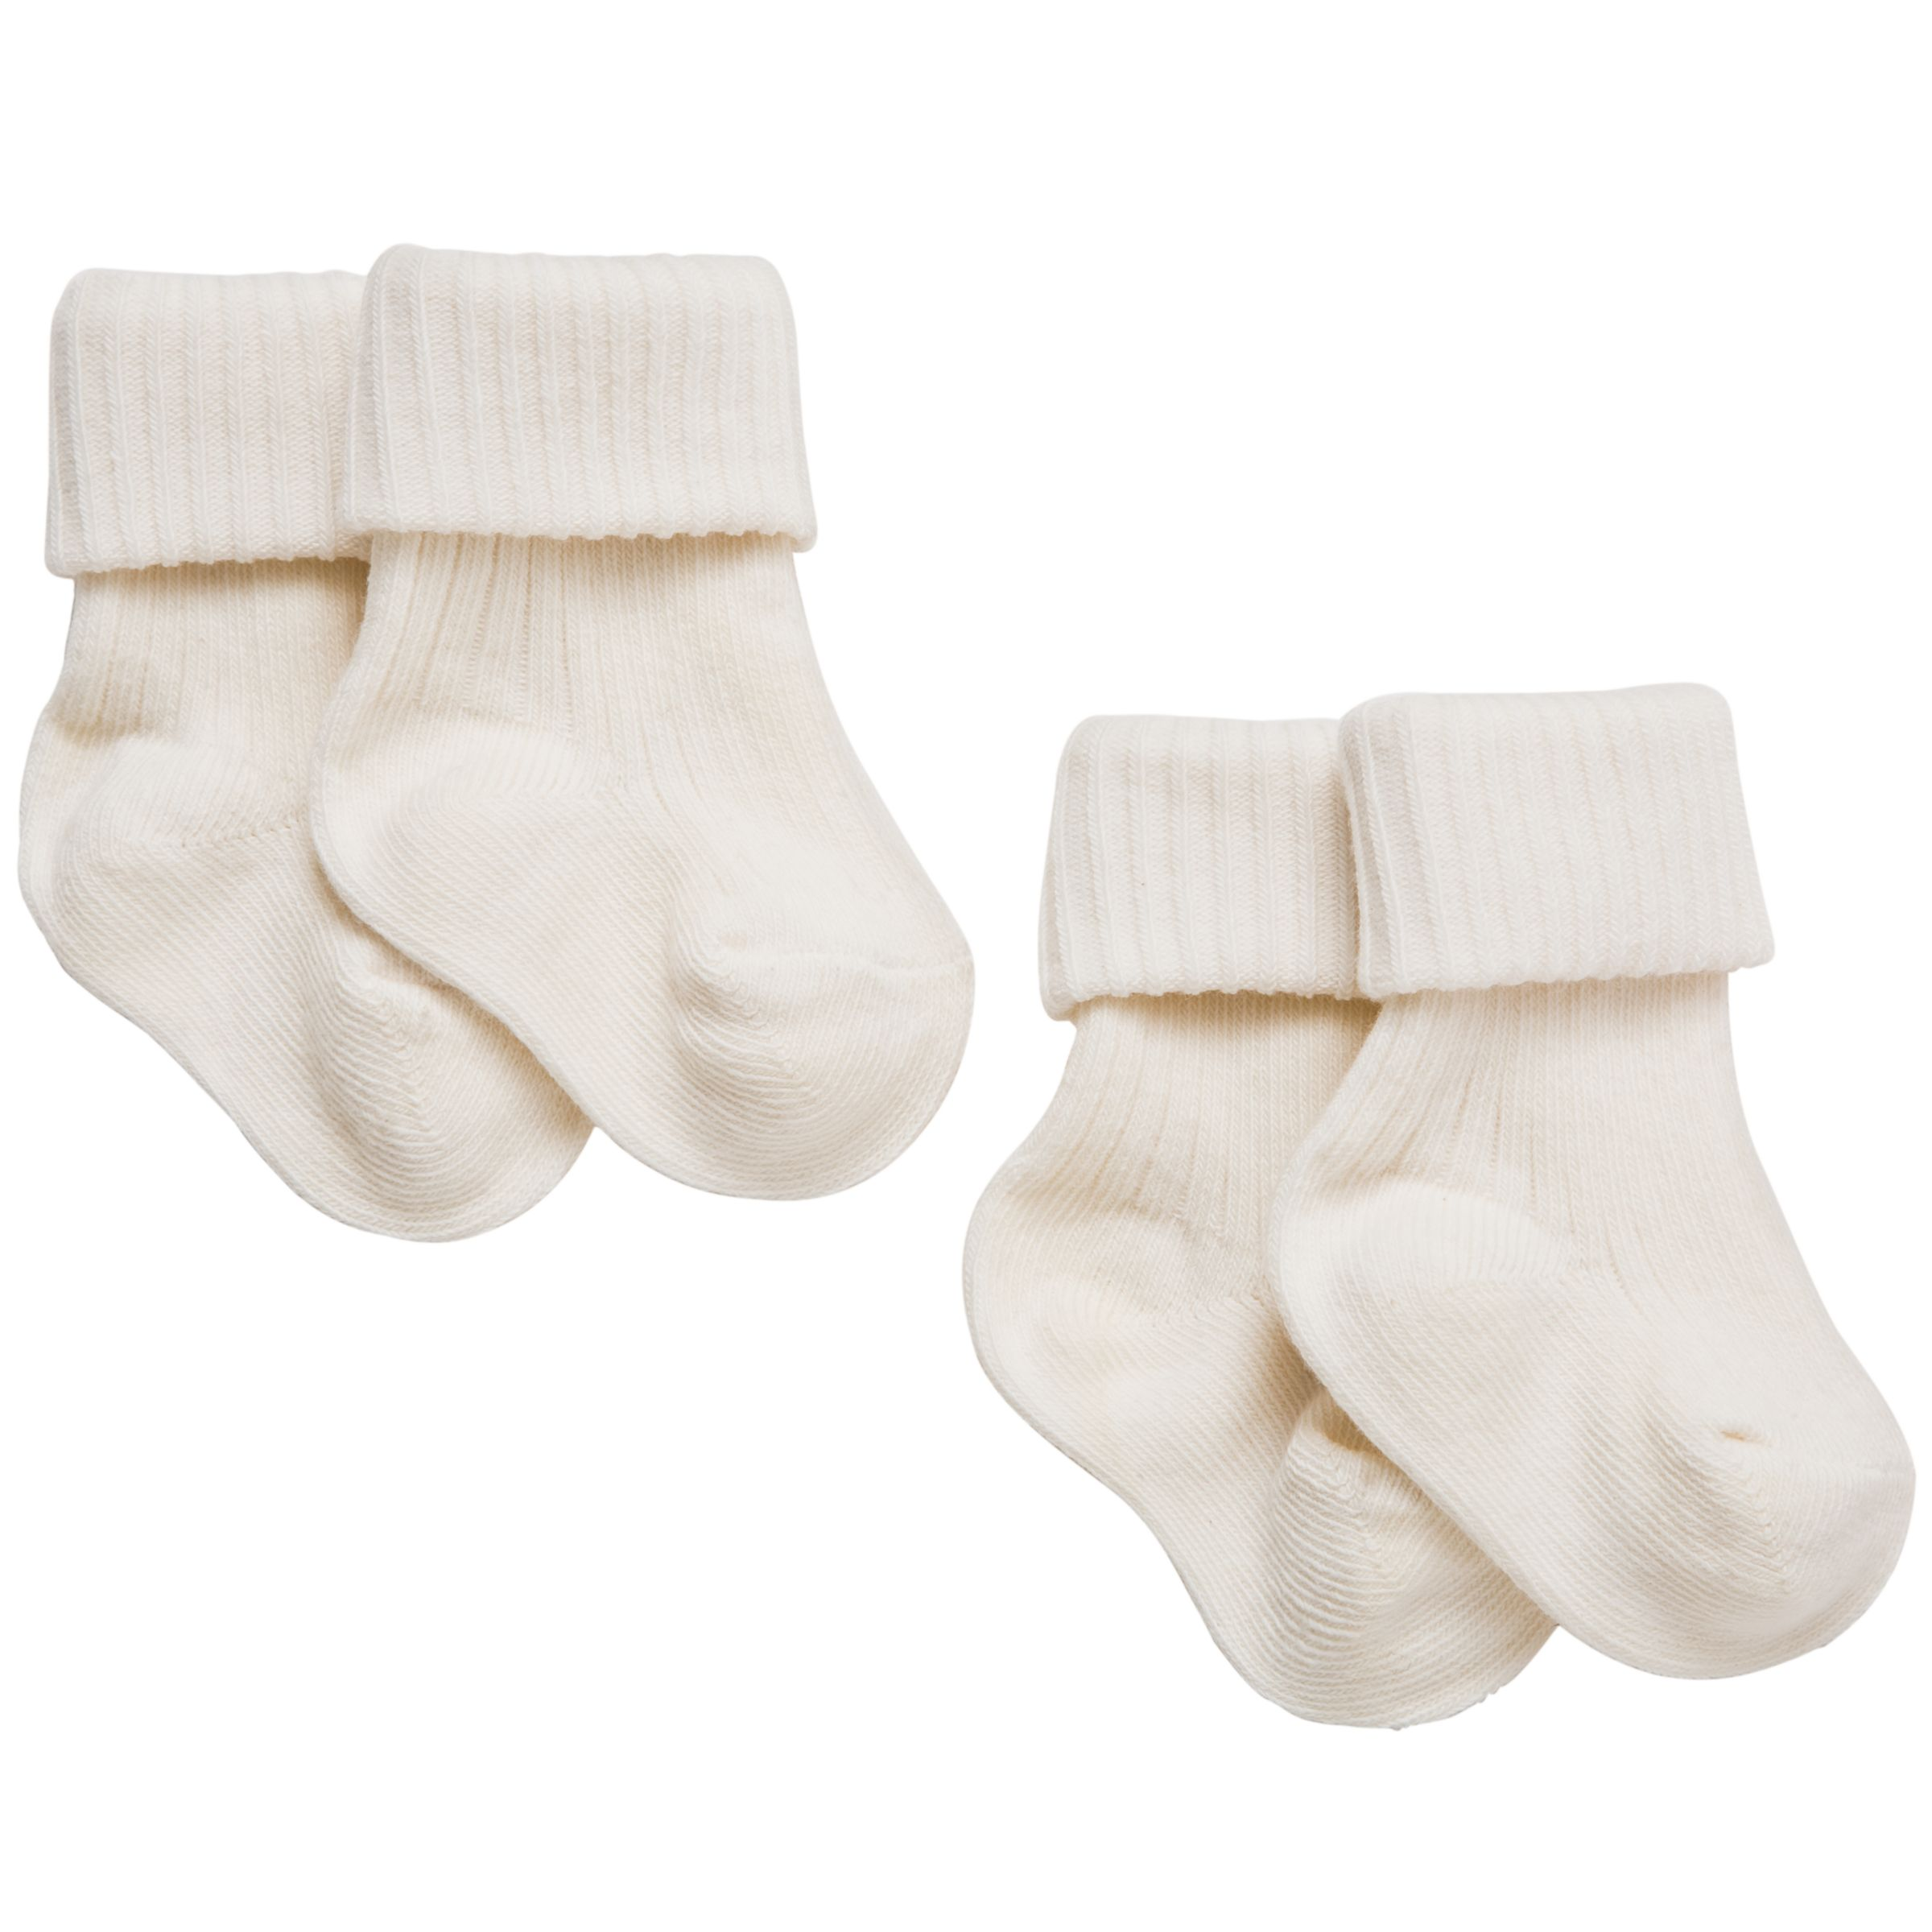 John Lewis Baby Organic Cotton Socks